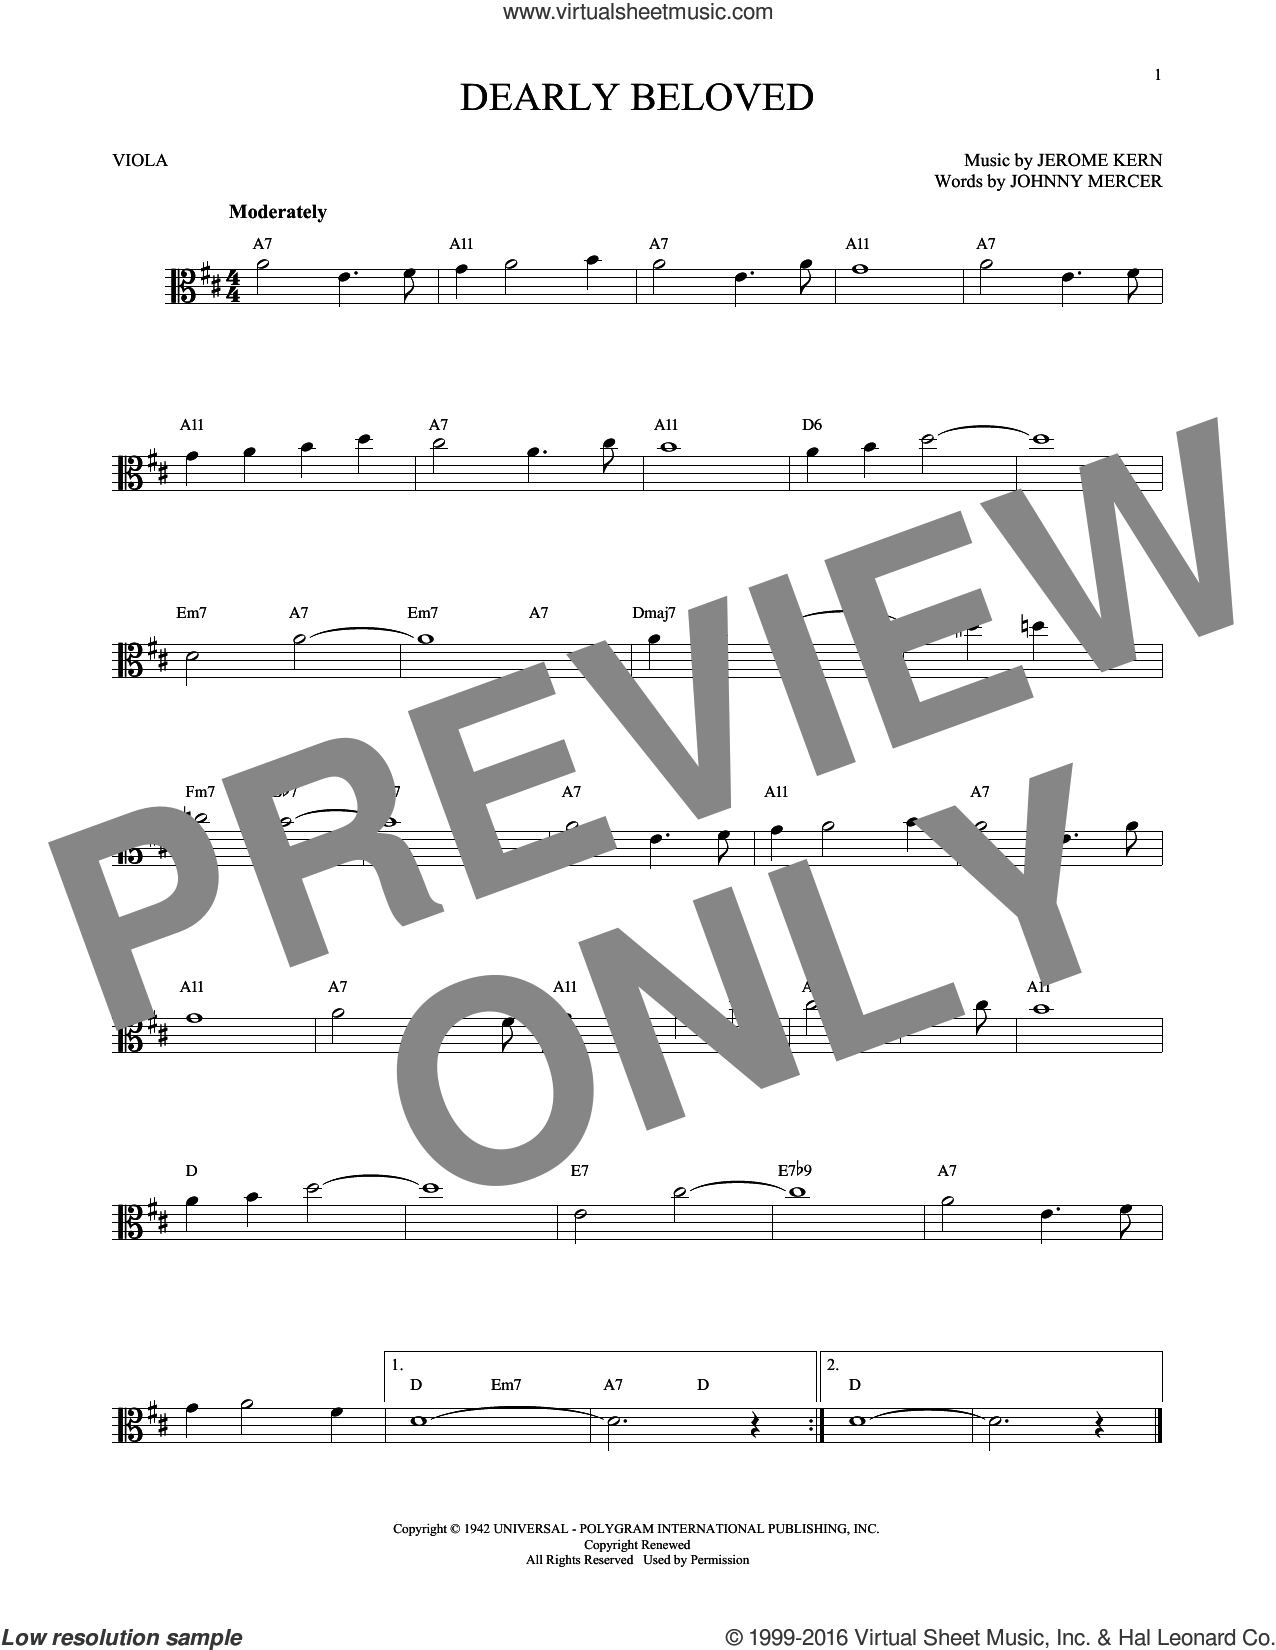 Dearly Beloved sheet music for viola solo by Johnny Mercer